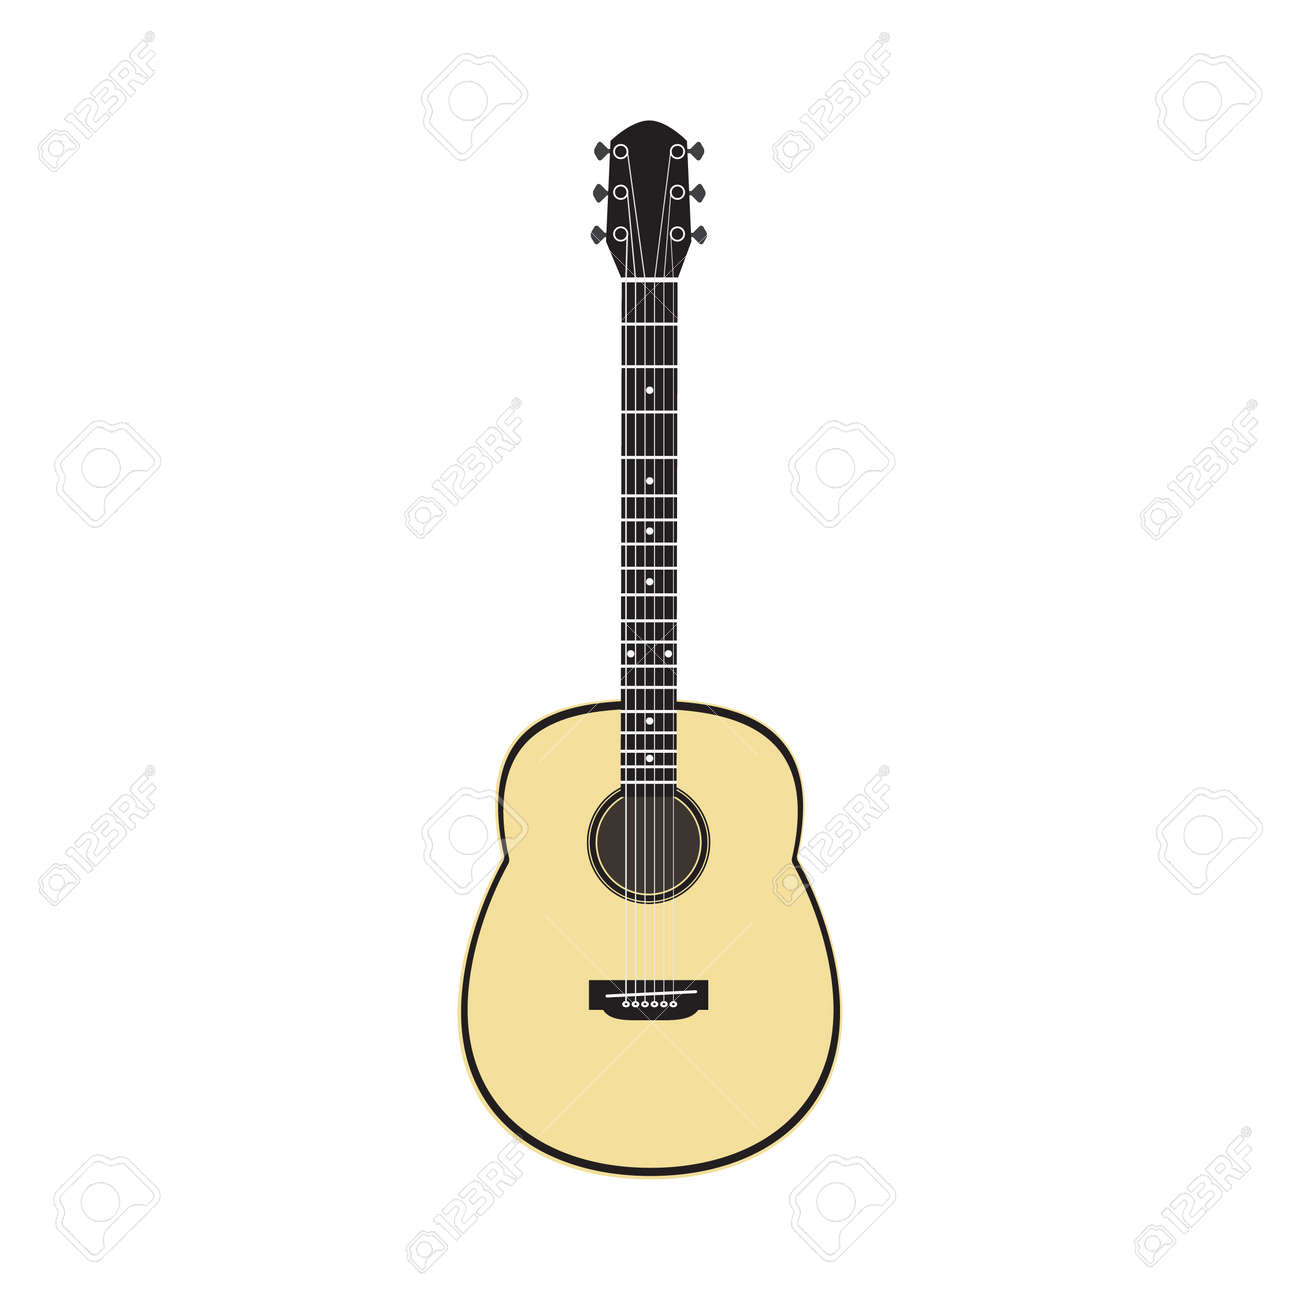 acoustic guitar vector royalty free cliparts vectors and stock rh 123rf com acoustic guitar vector png acoustic guitar logo vector